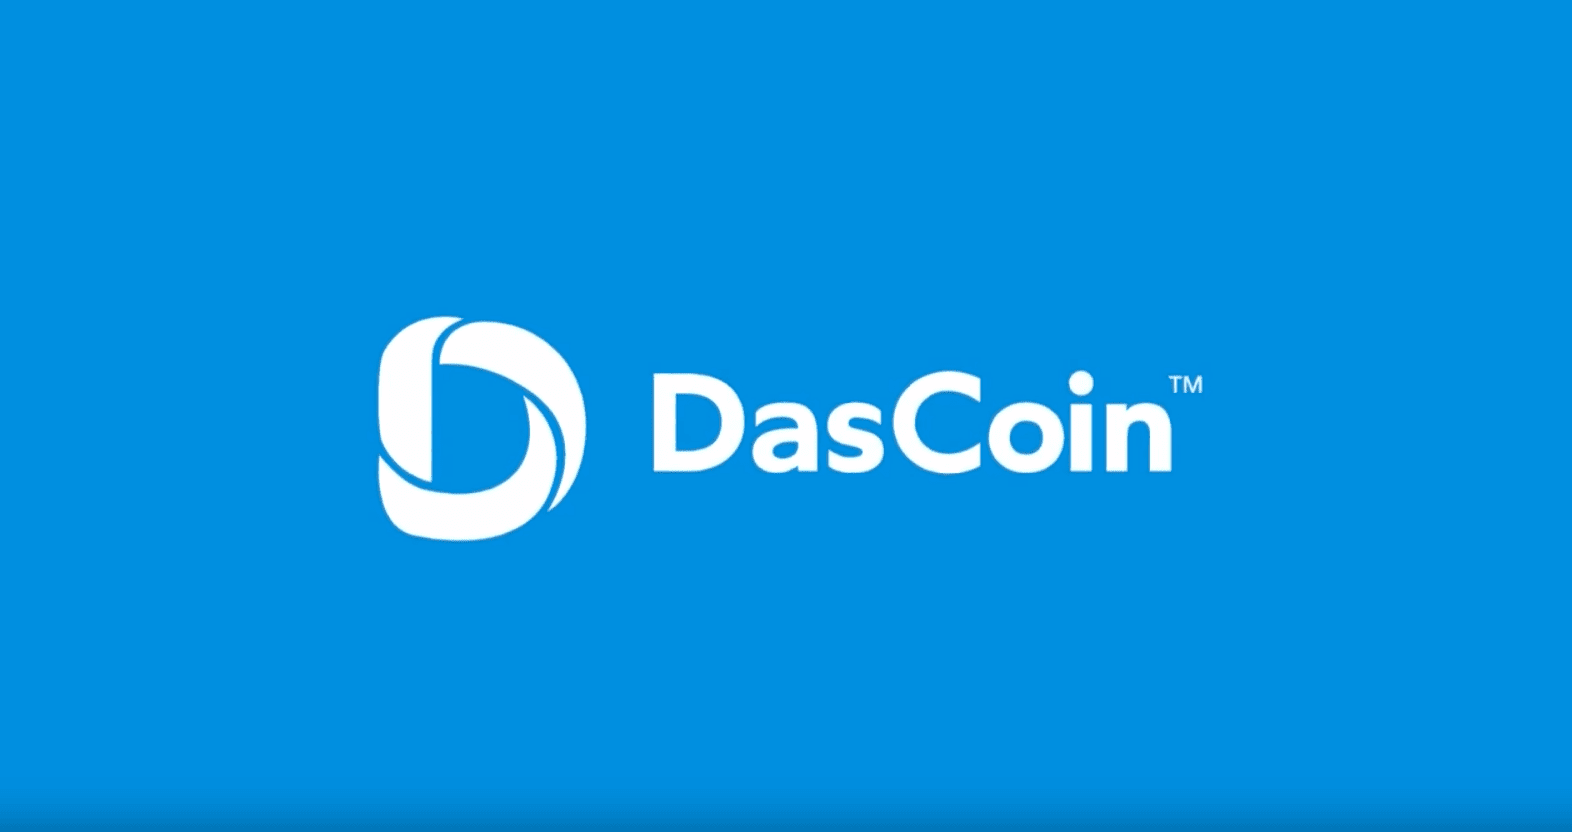 DasCoin Cryptocurrency Trends Header Image